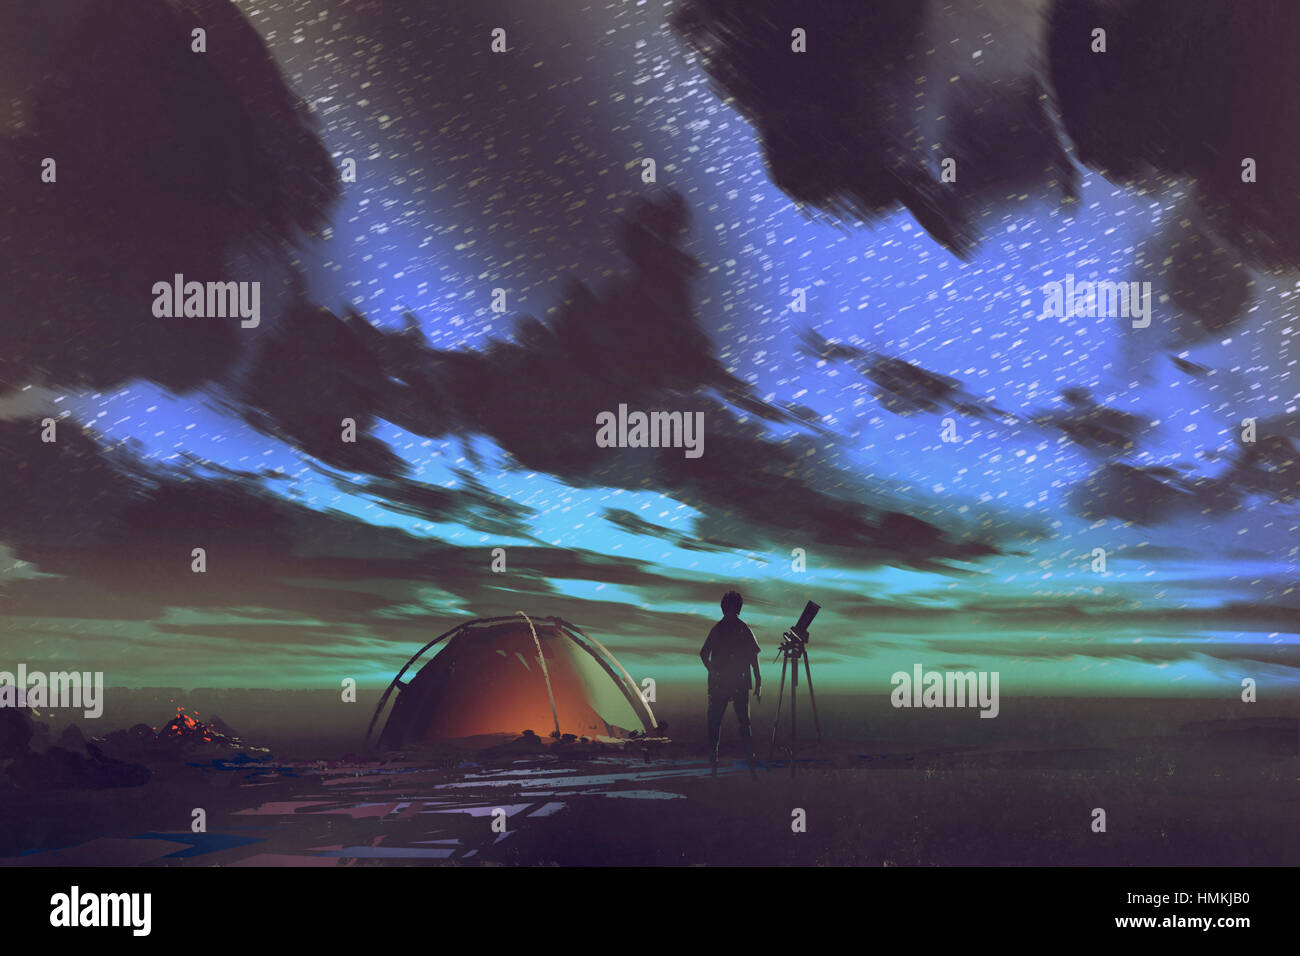 man with telescope standing by tent looking at the sky at night,illustration painting Stock Photo